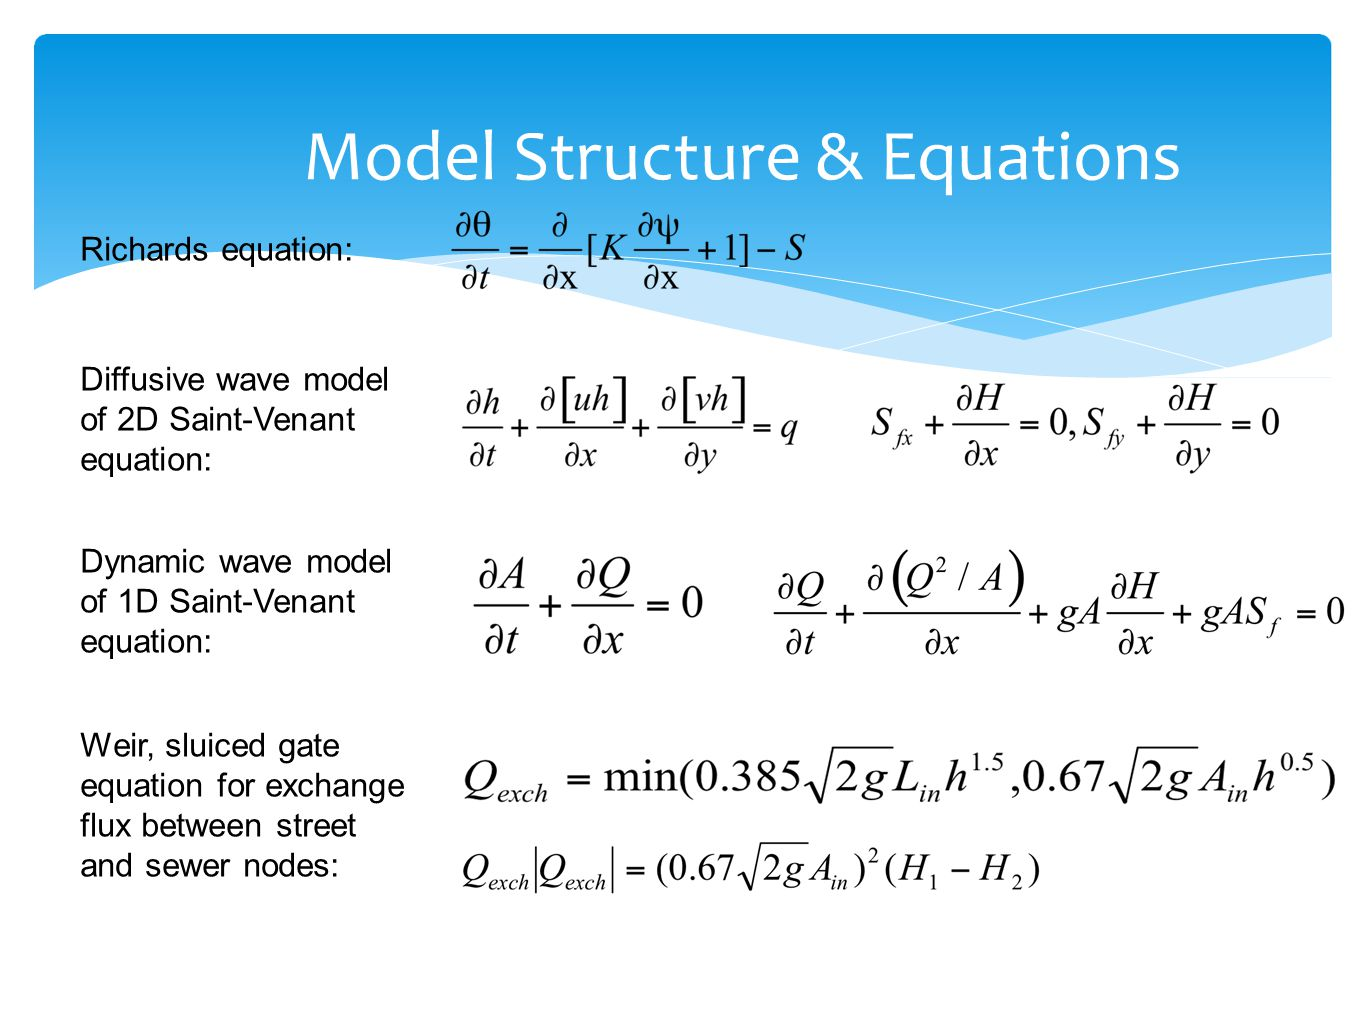 Richards equation: Diffusive wave model of 2D Saint-Venant equation: Dynamic wave model of 1D Saint-Venant equation: Weir, sluiced gate equation for e